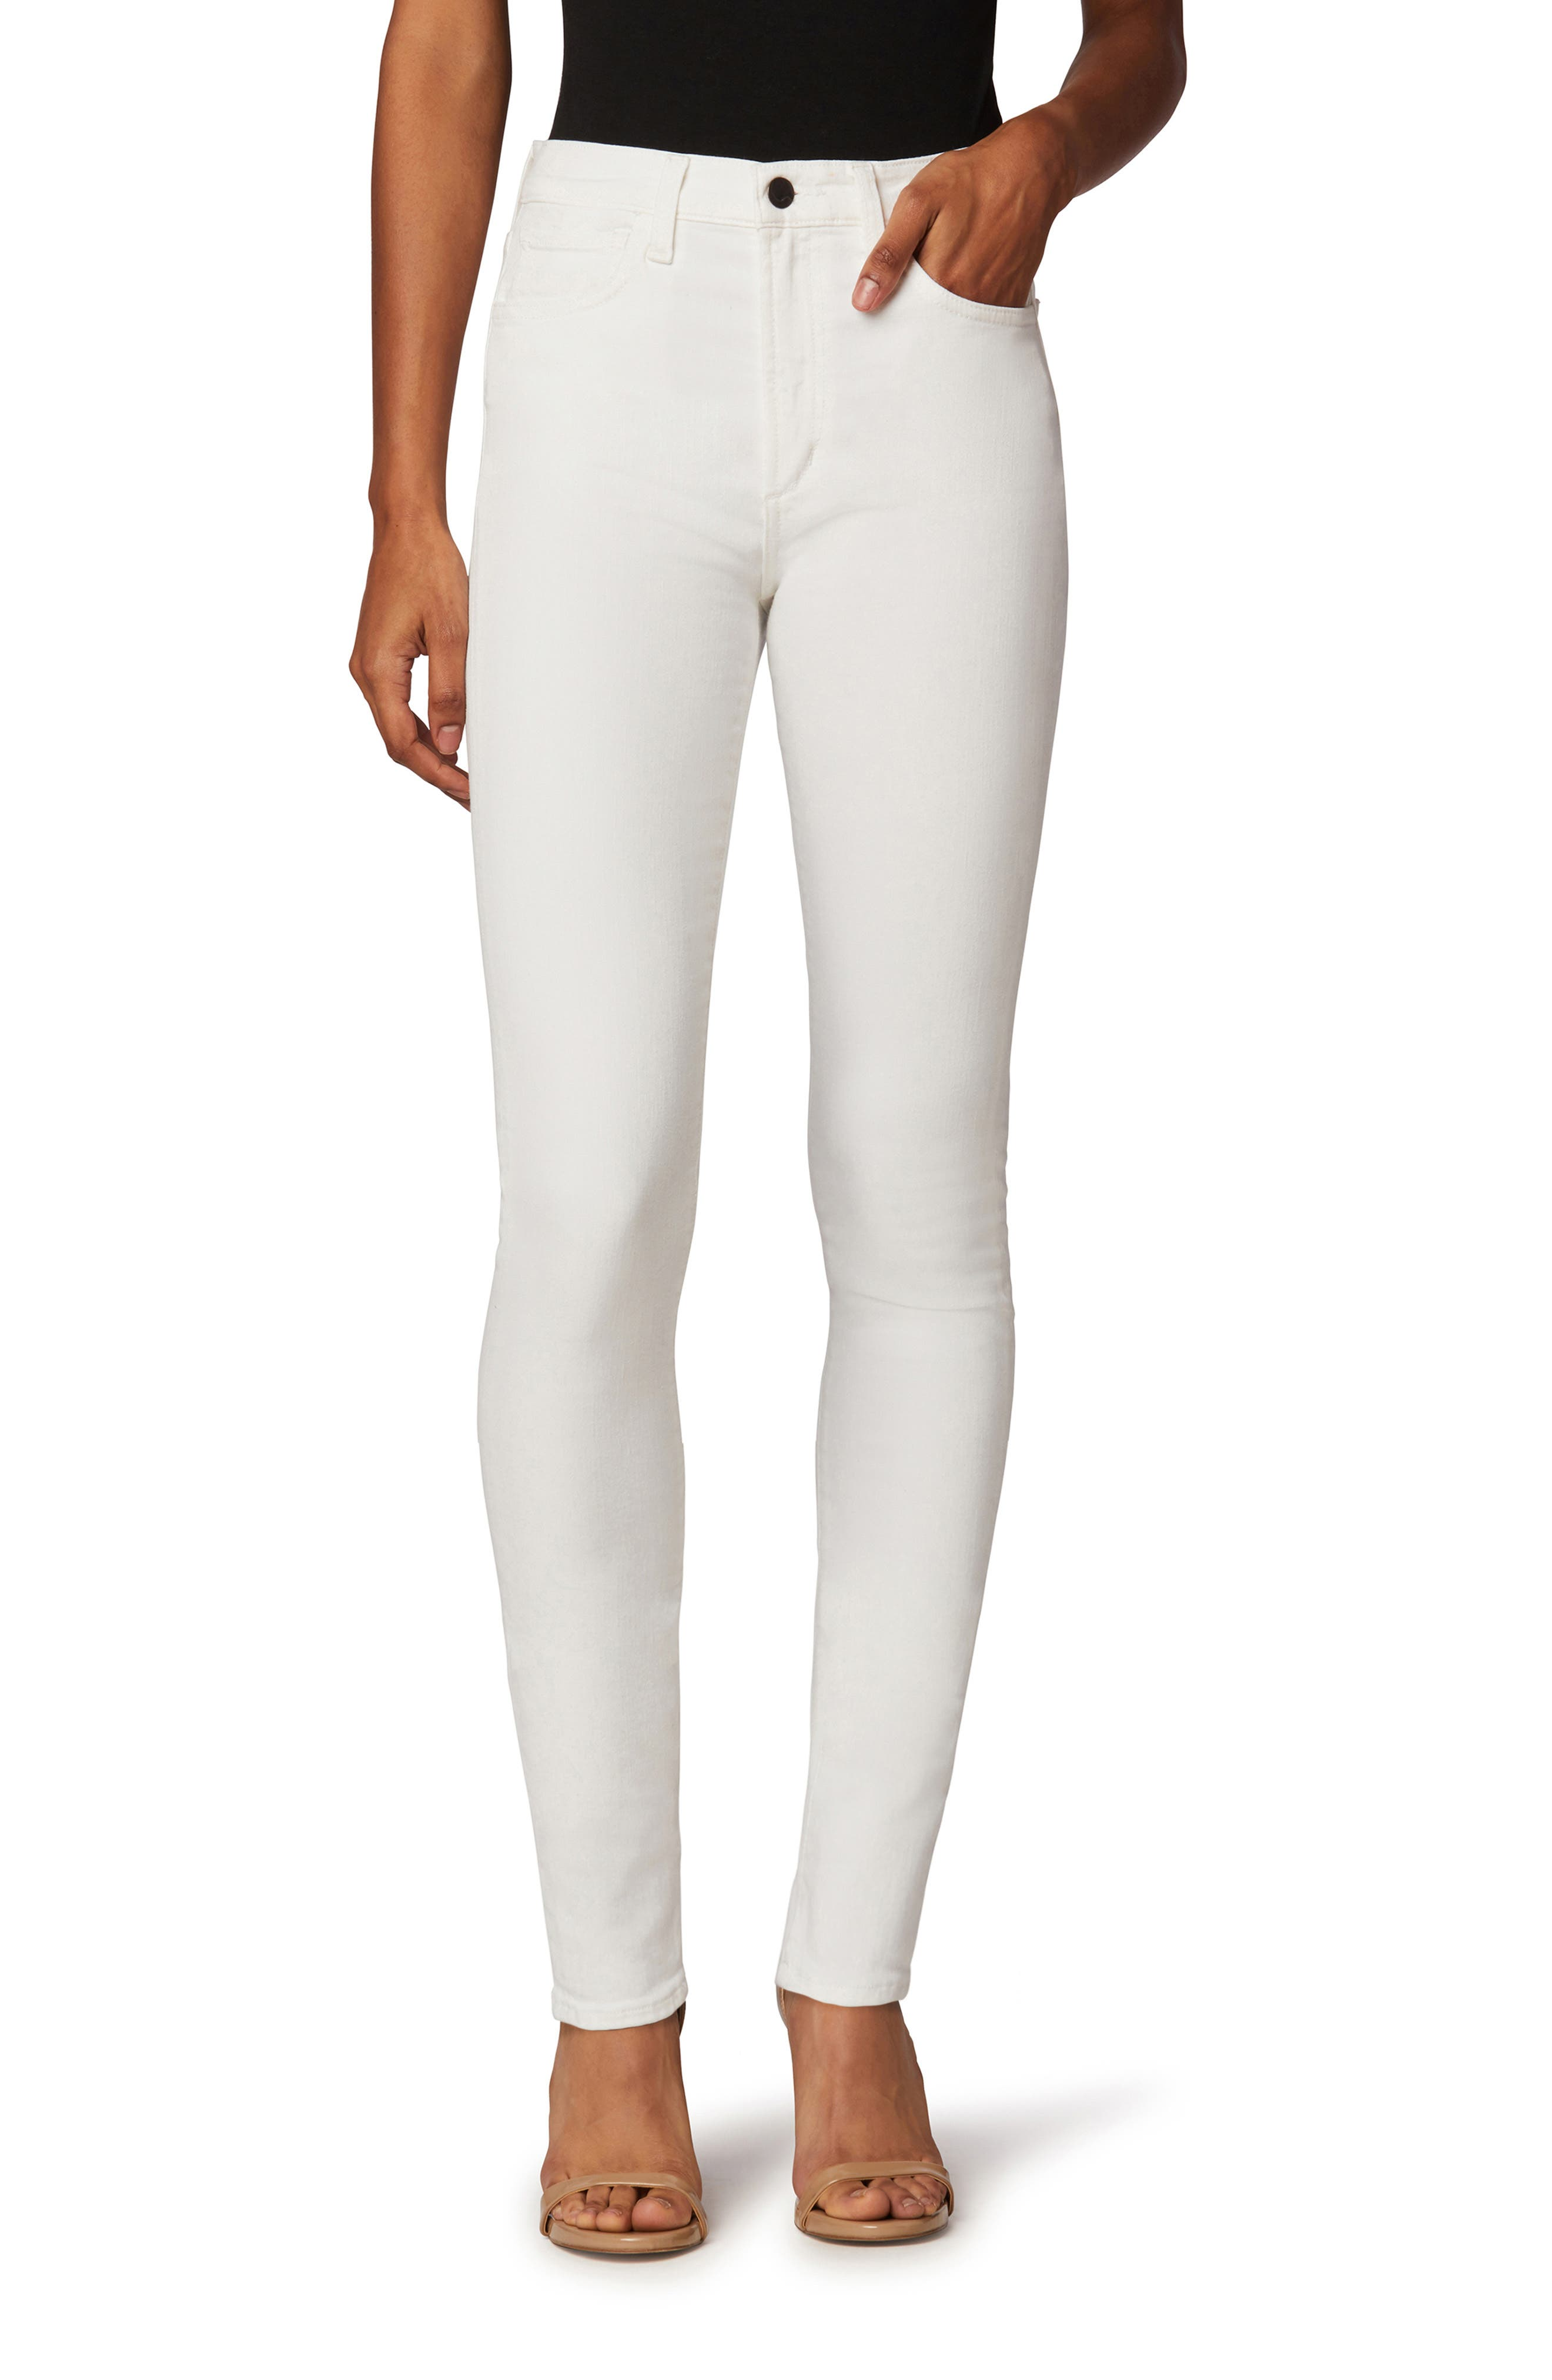 The High Rise Twiggy Skinny Jeans